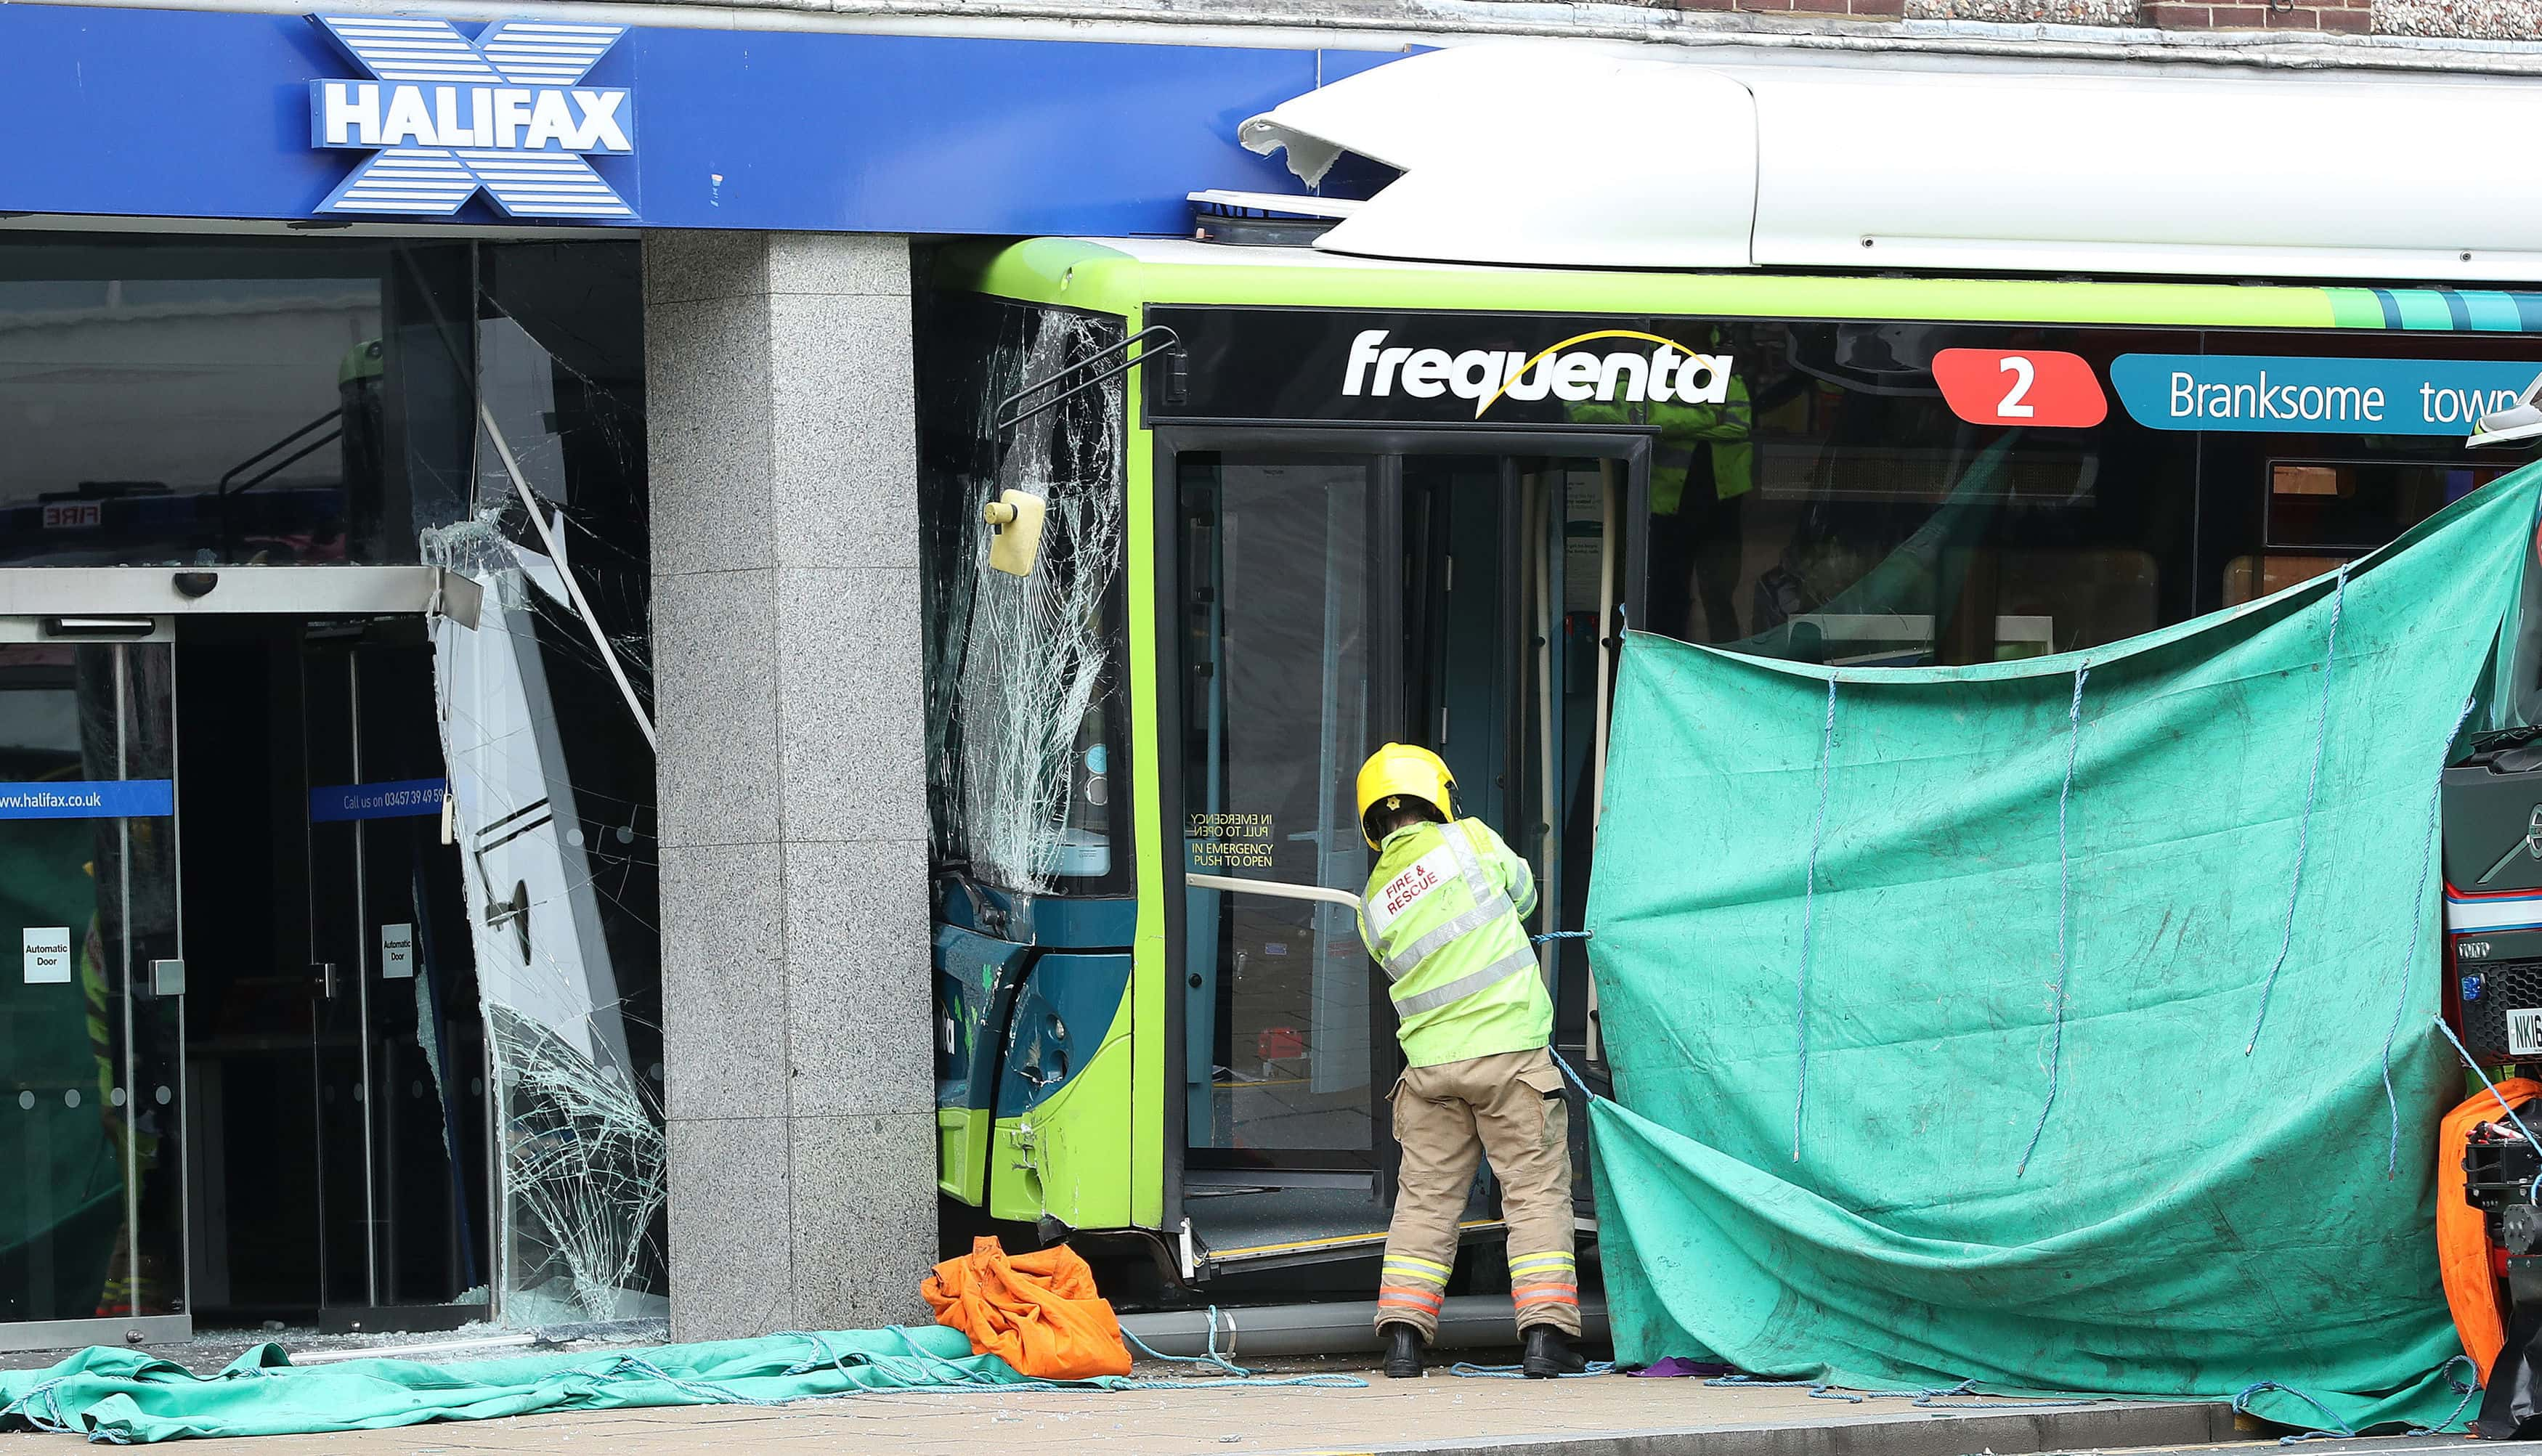 The scene in Darlington where an elderly female pedestrian has died after a bus crashed into a Halifax Bank branch.